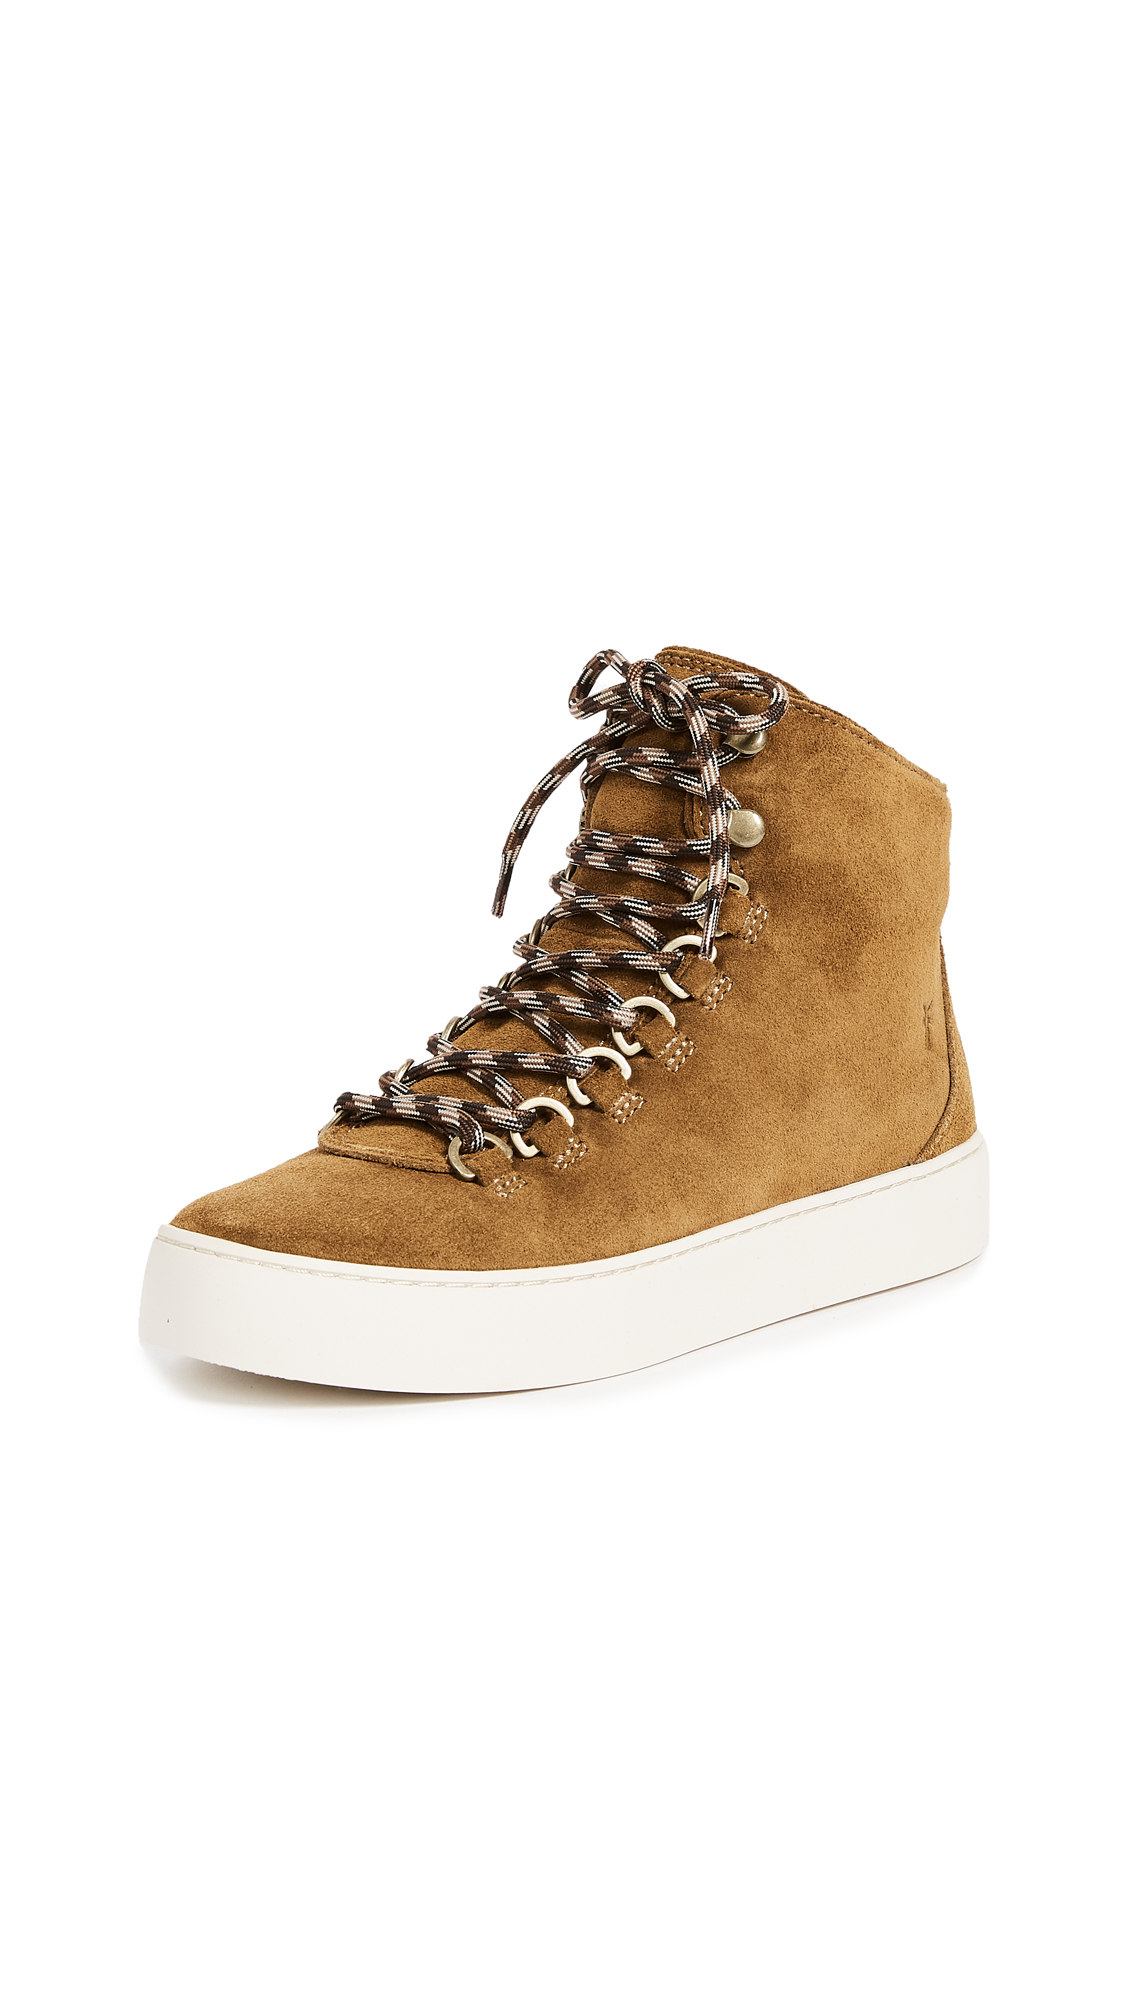 Frye Lena Hiker Sneakers - Wheat